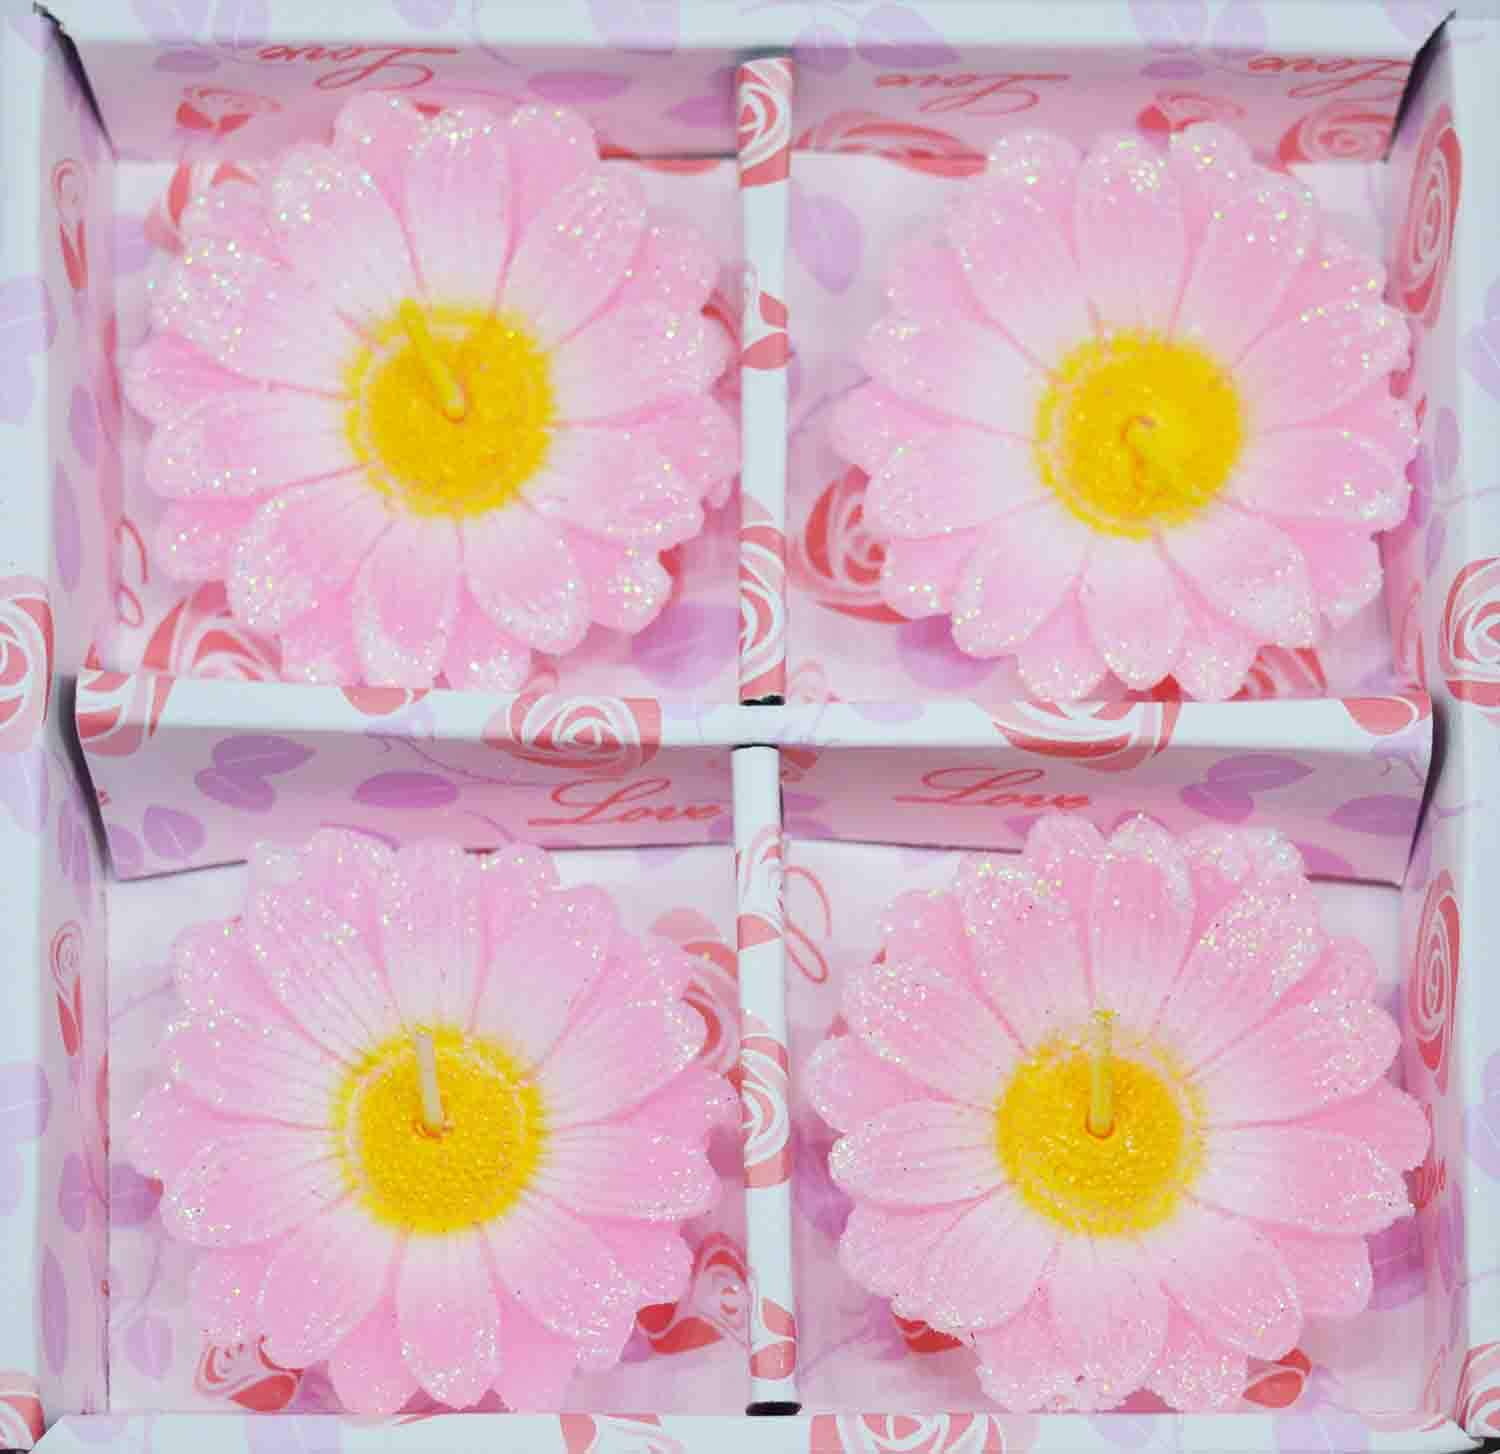 DAISY FLOWERS FLOATING TEALIGHT CANDLES VALENTINE/'S DAY DECOR 10 PCS